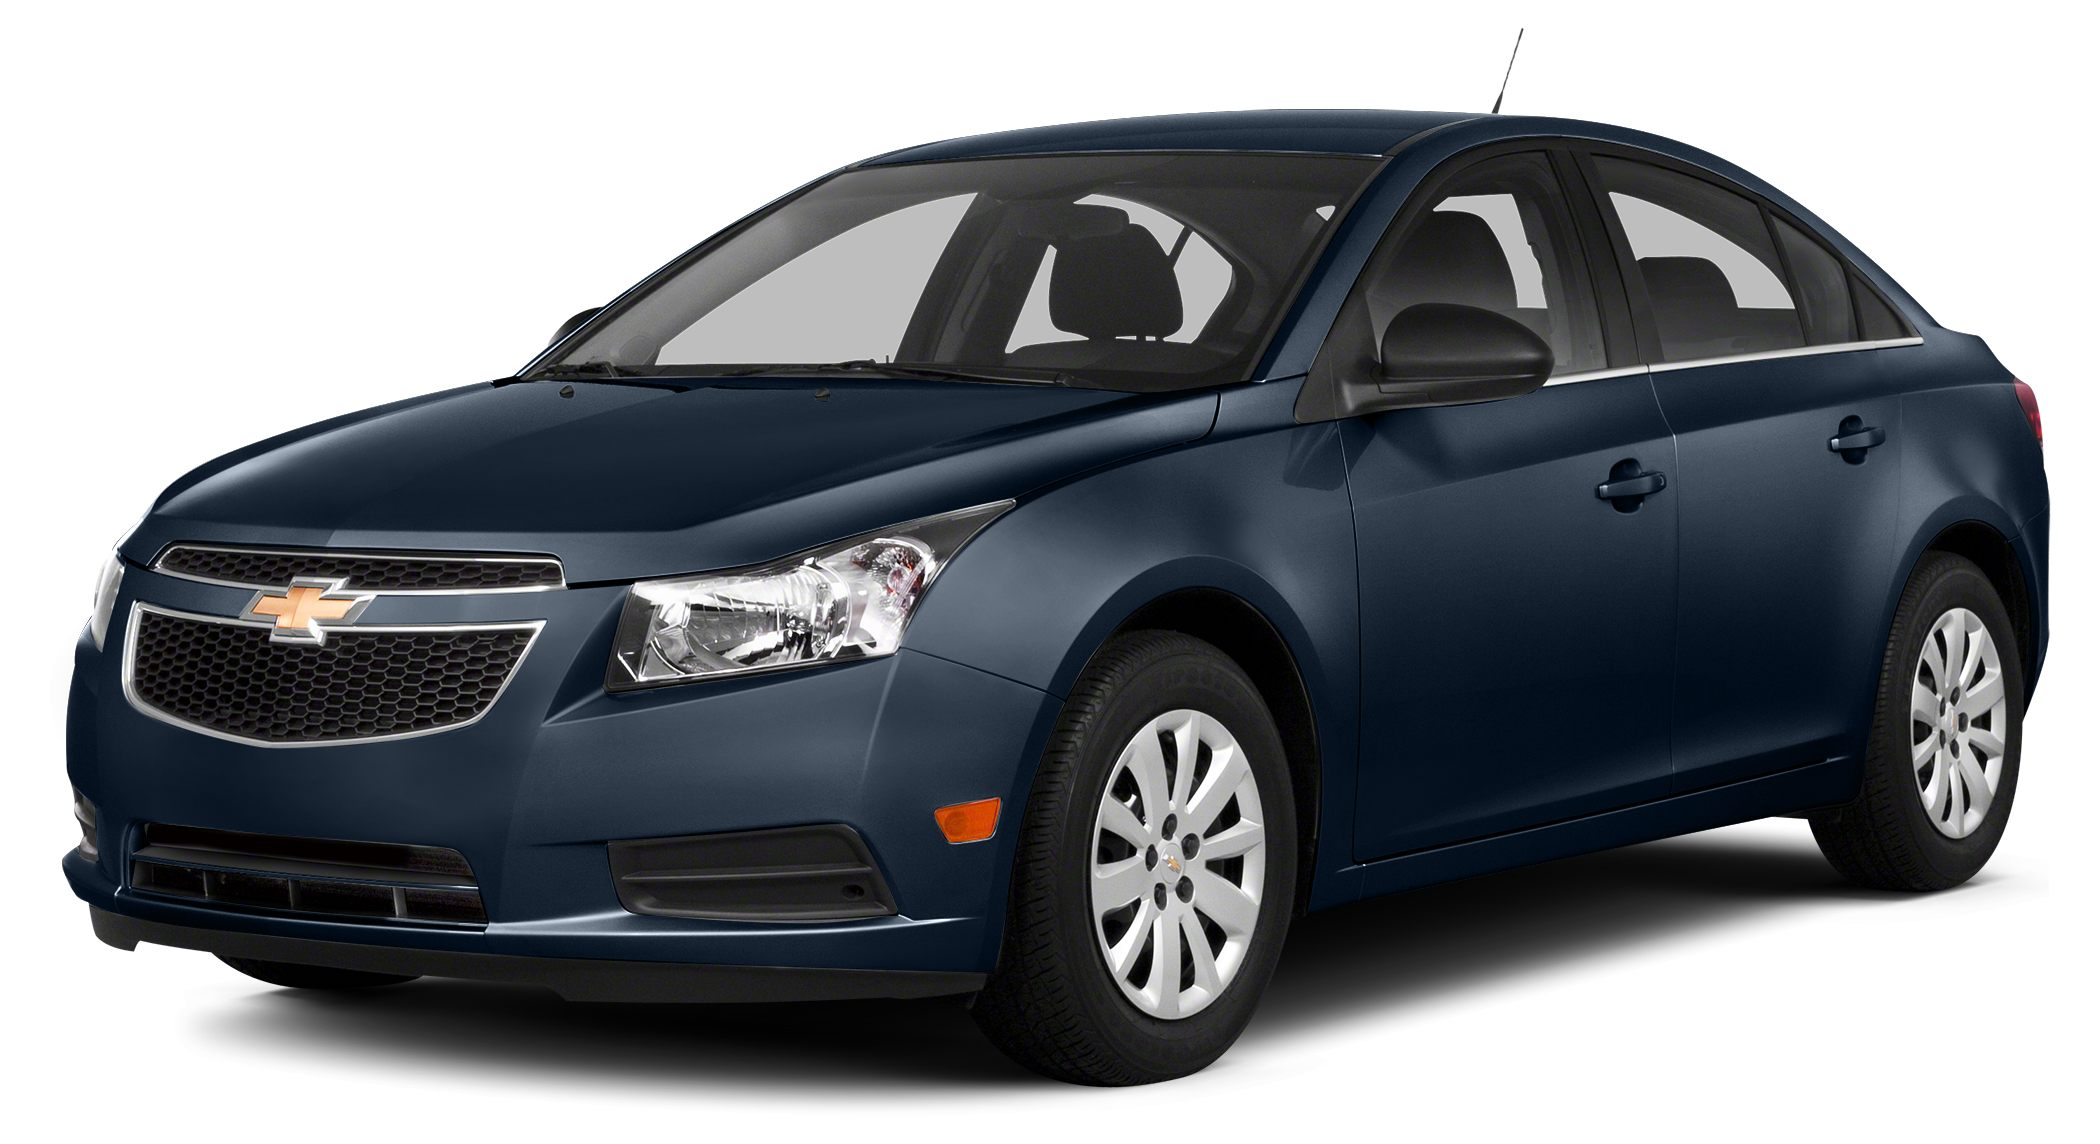 2014 Chevrolet Cruze 1LT 1LT trim REDUCED FROM 15400 EPA 38 MPG Hwy26 MPG City CARFAX 1-Own